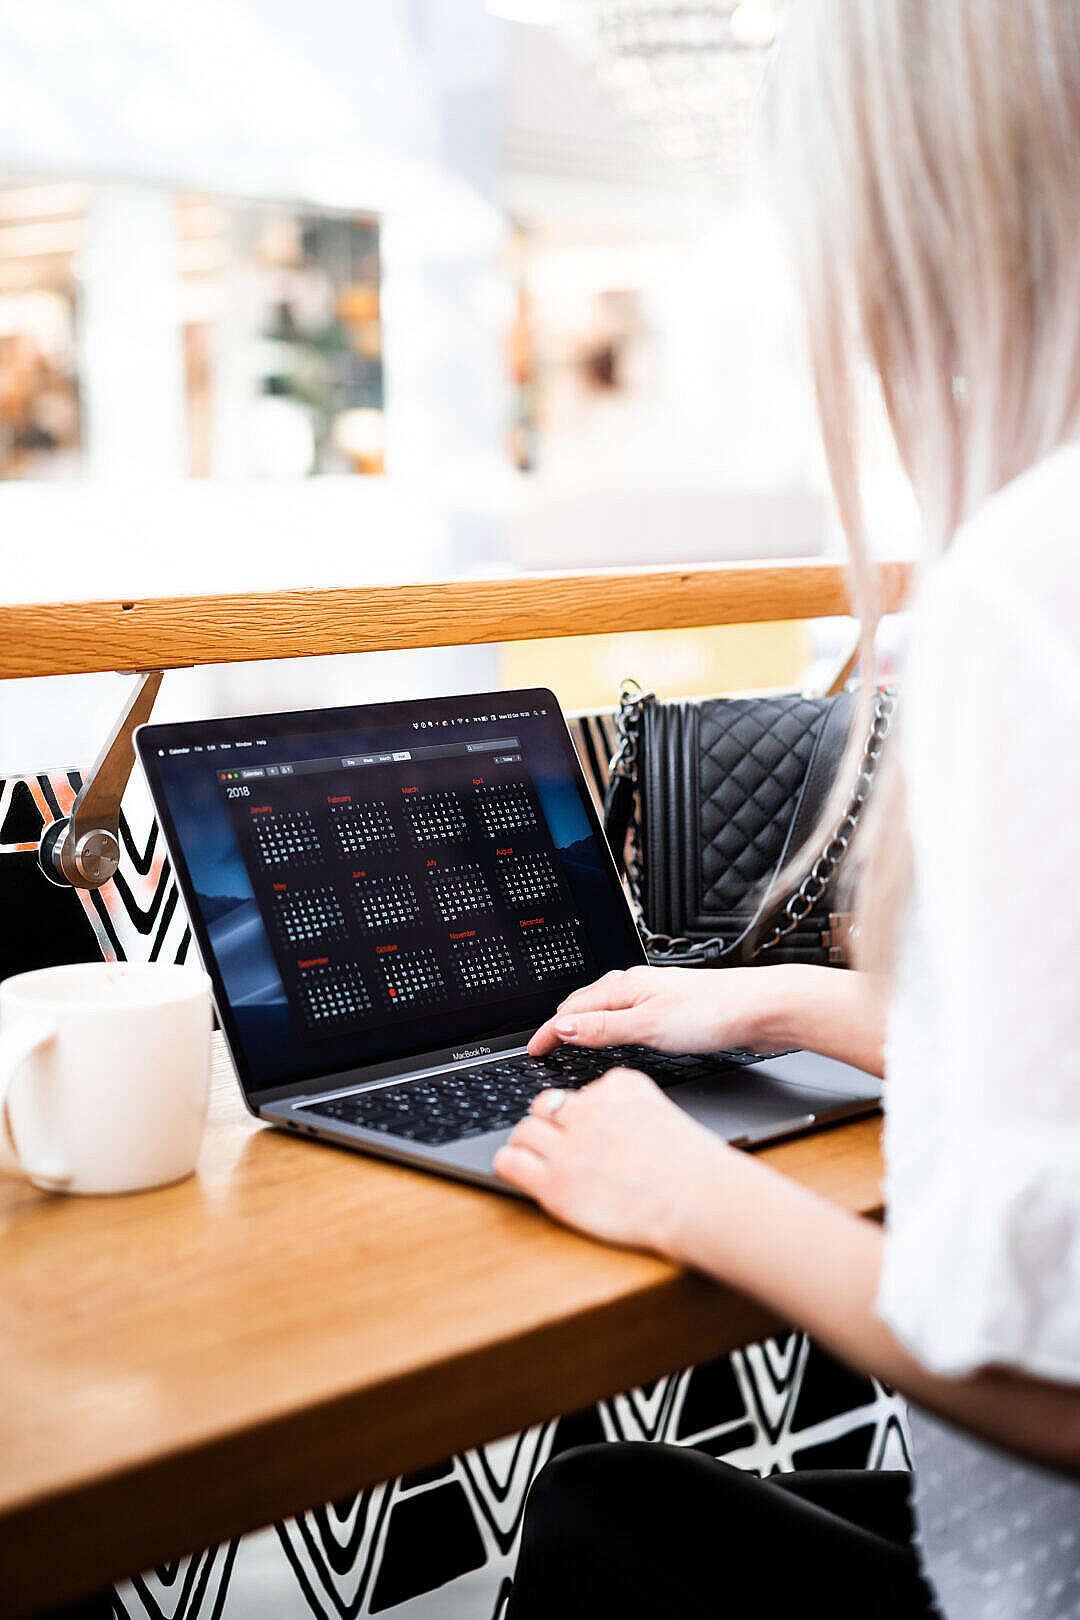 Download Young Woman Remote Working in a Café FREE Stock Photo